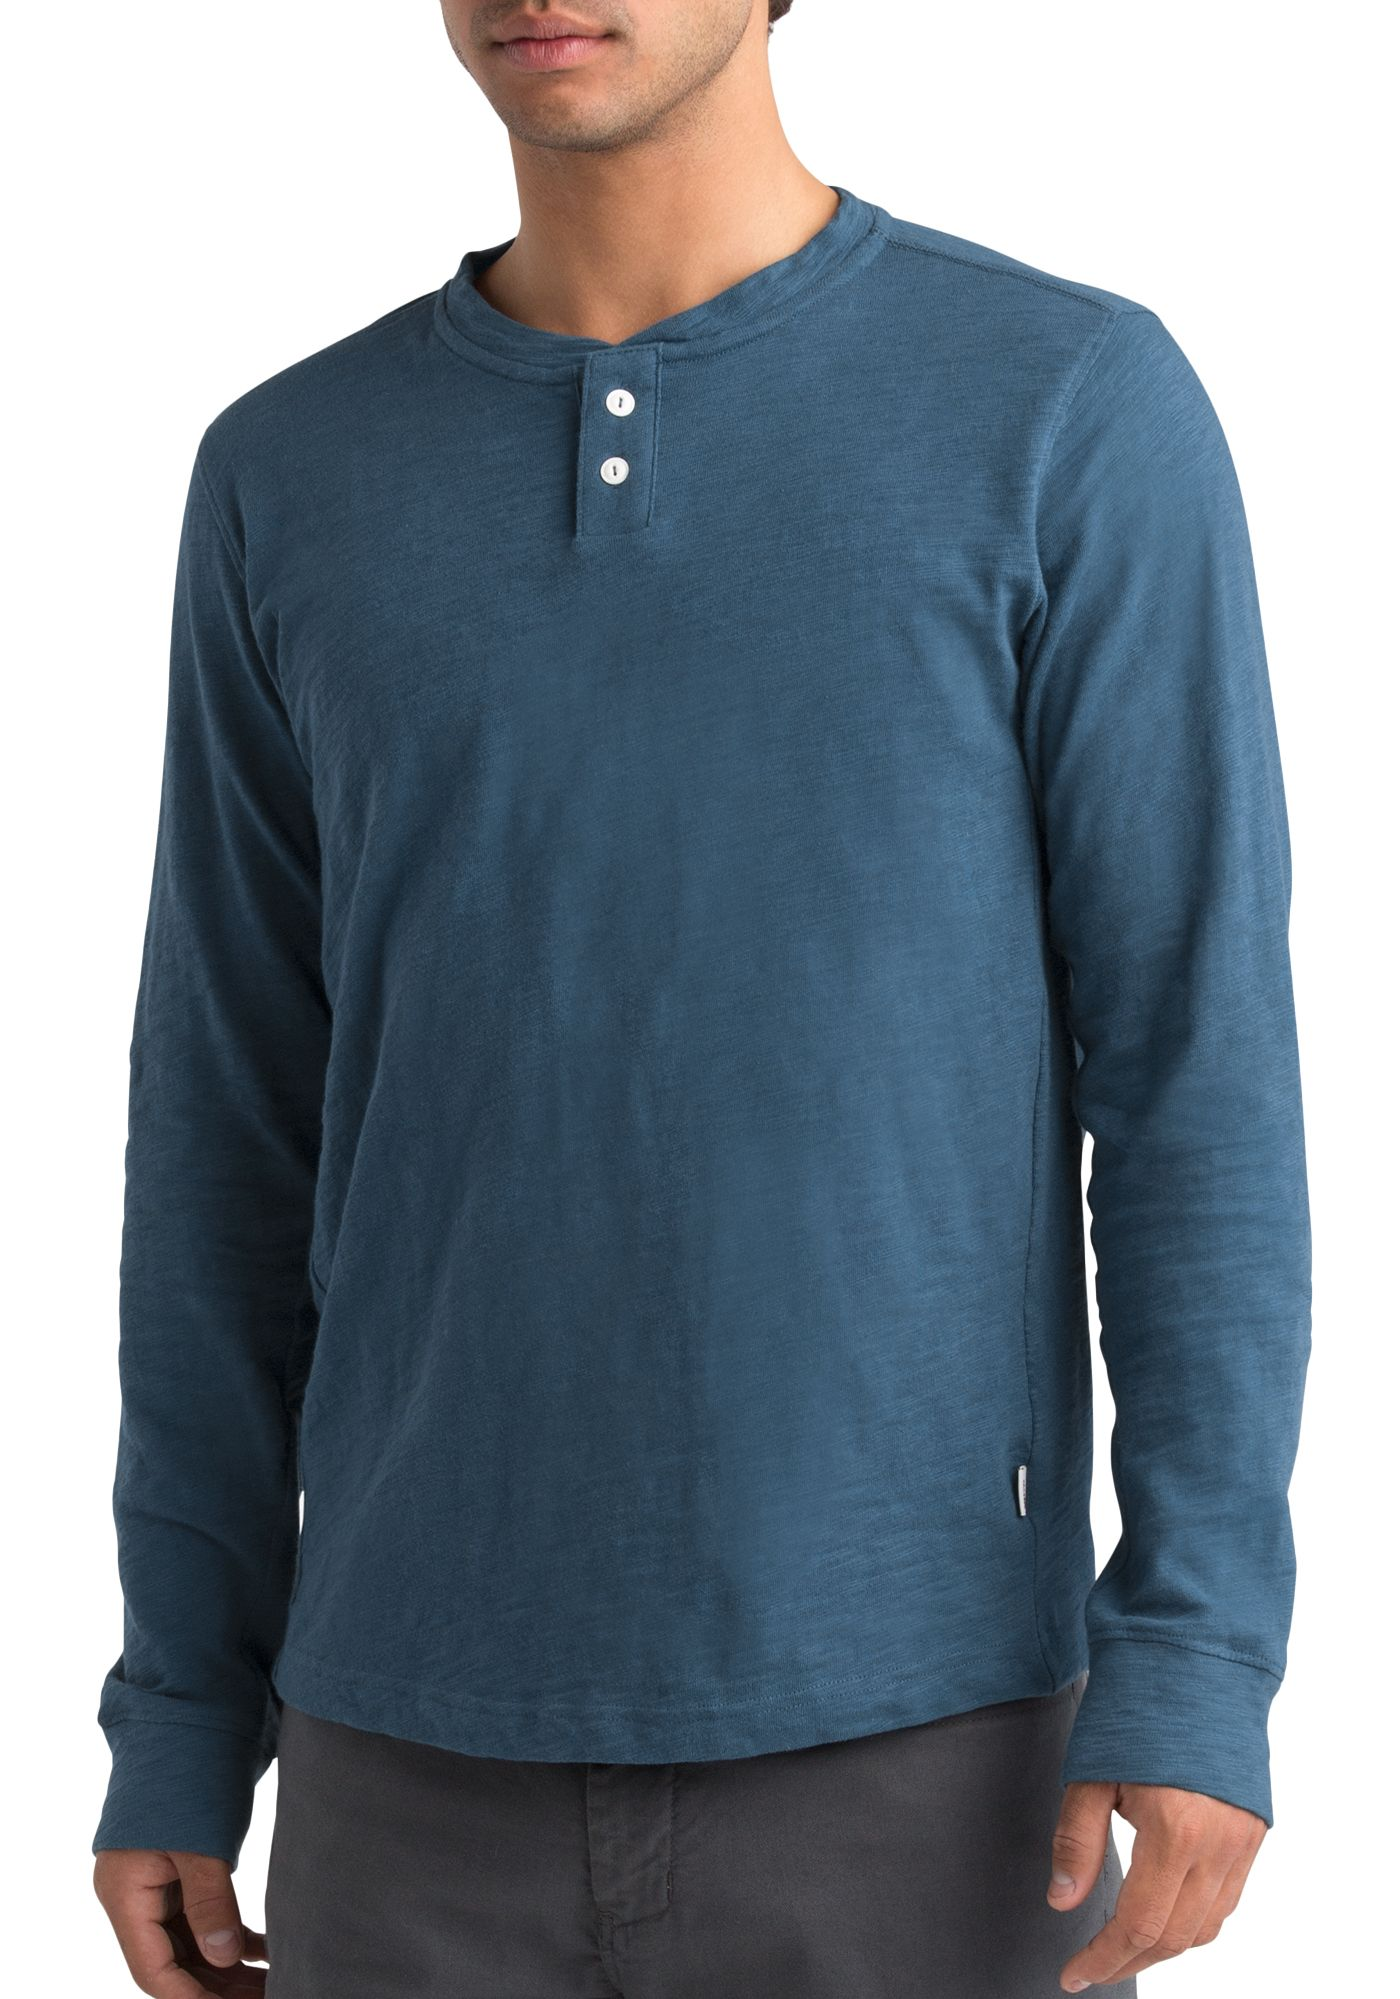 The North Face Men's Chasmic Long Sleeve Henley Shirt